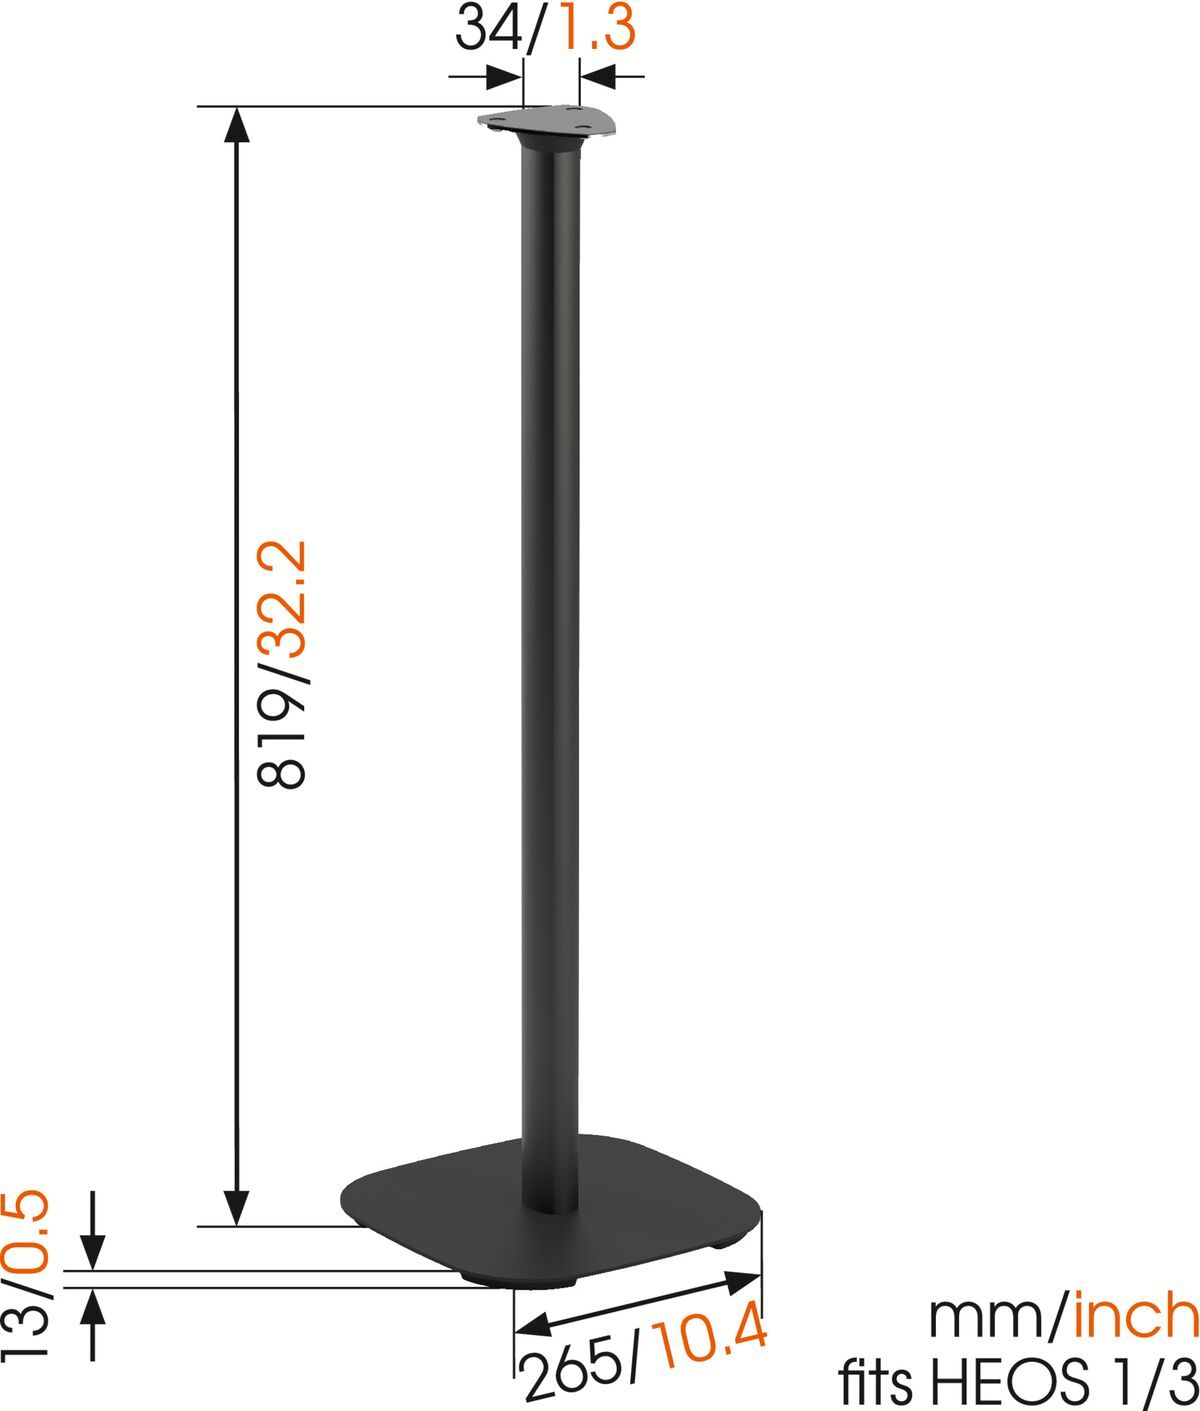 Vogel's SOUND 5313 Speaker Stand for Denon HEOS 1 / HEOS 3 (black) - Dimensions